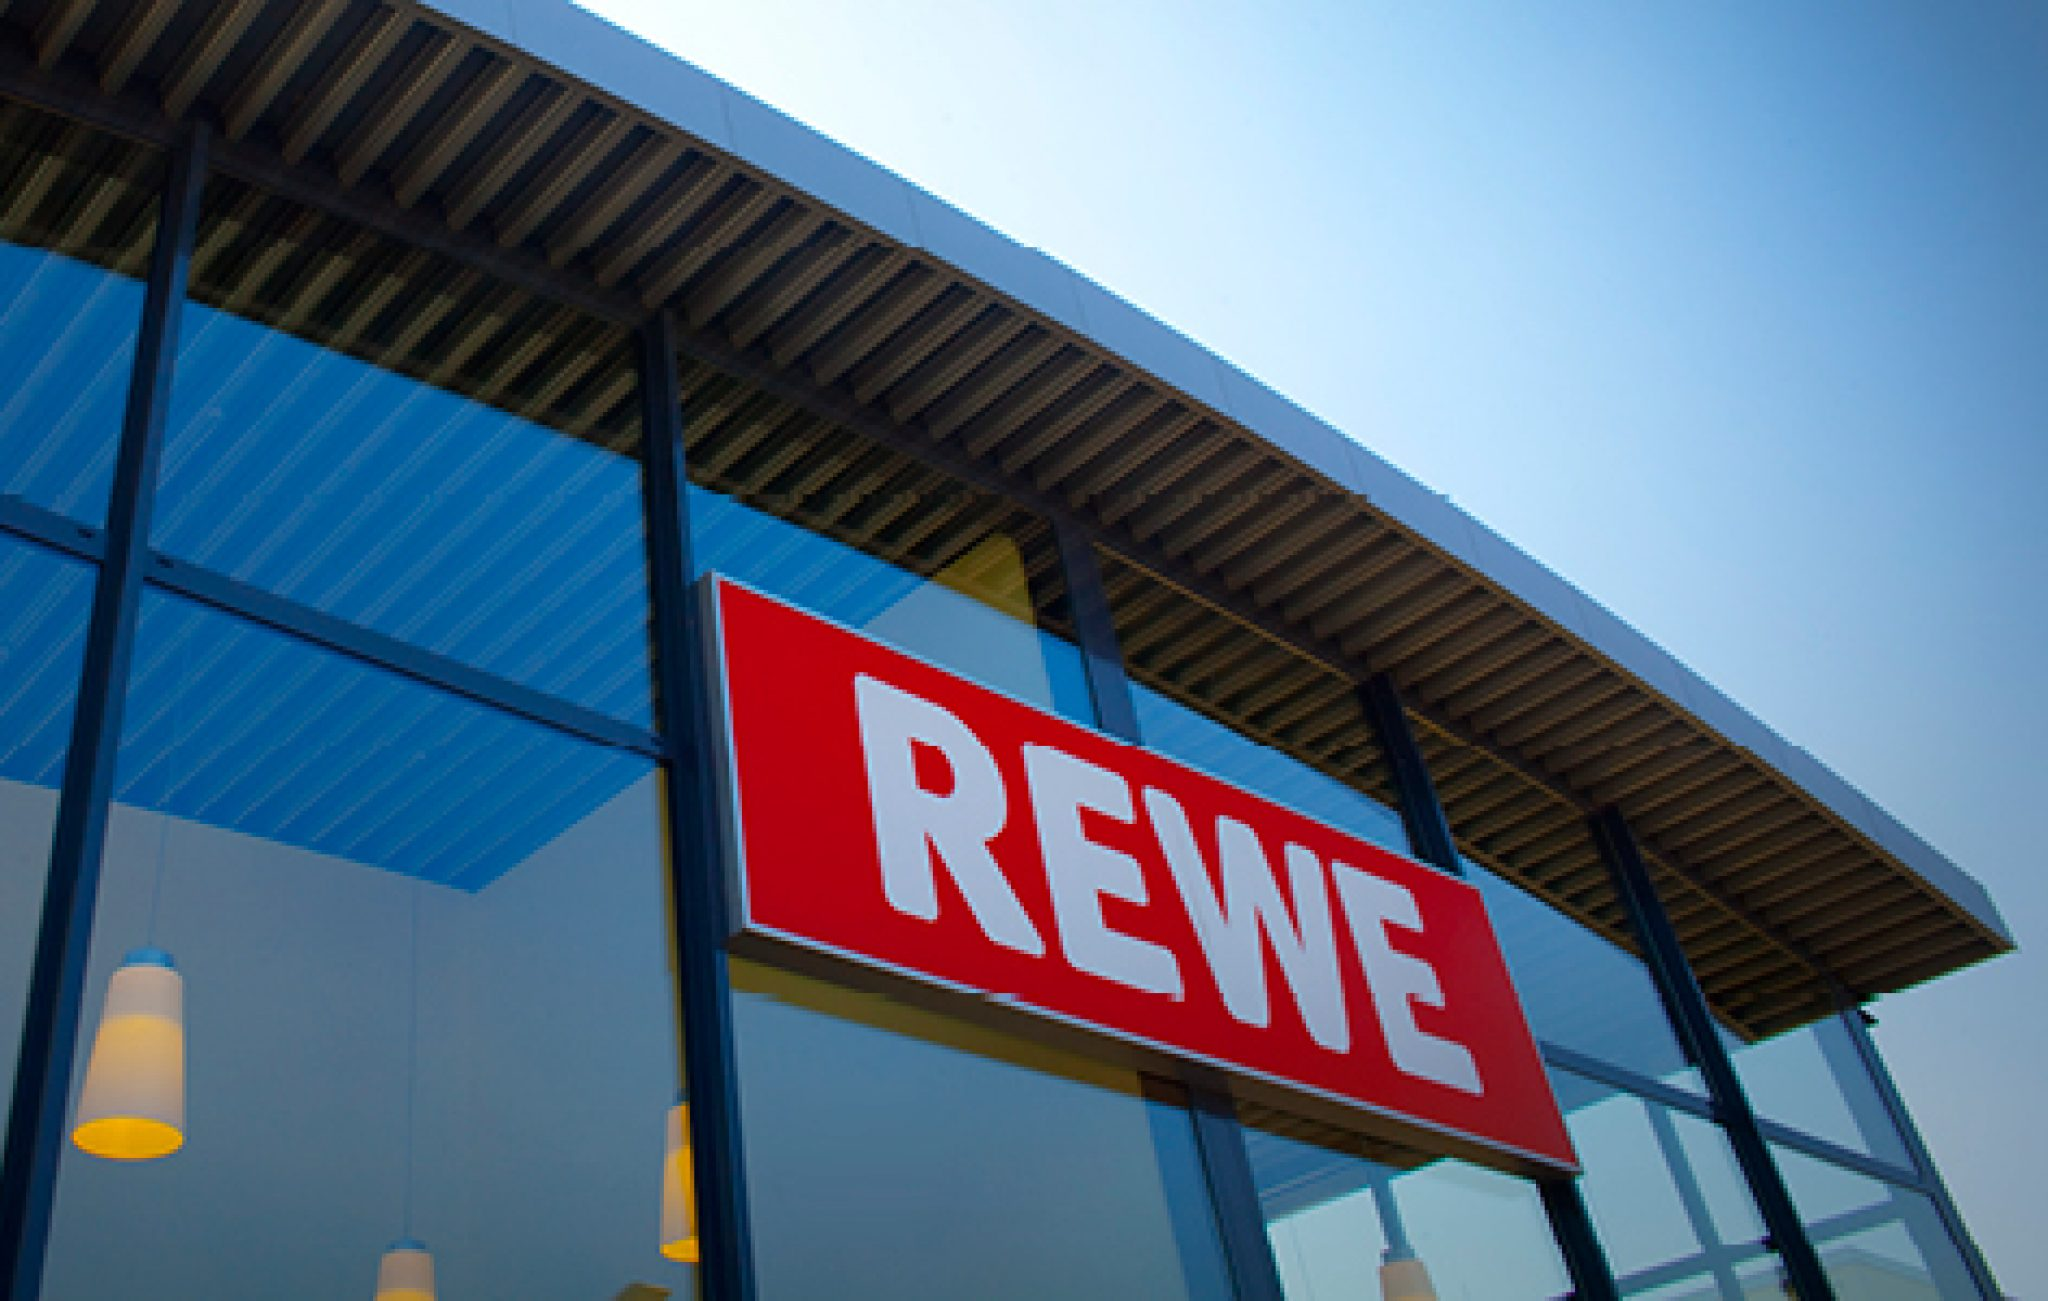 Rewe Group sign CPPA